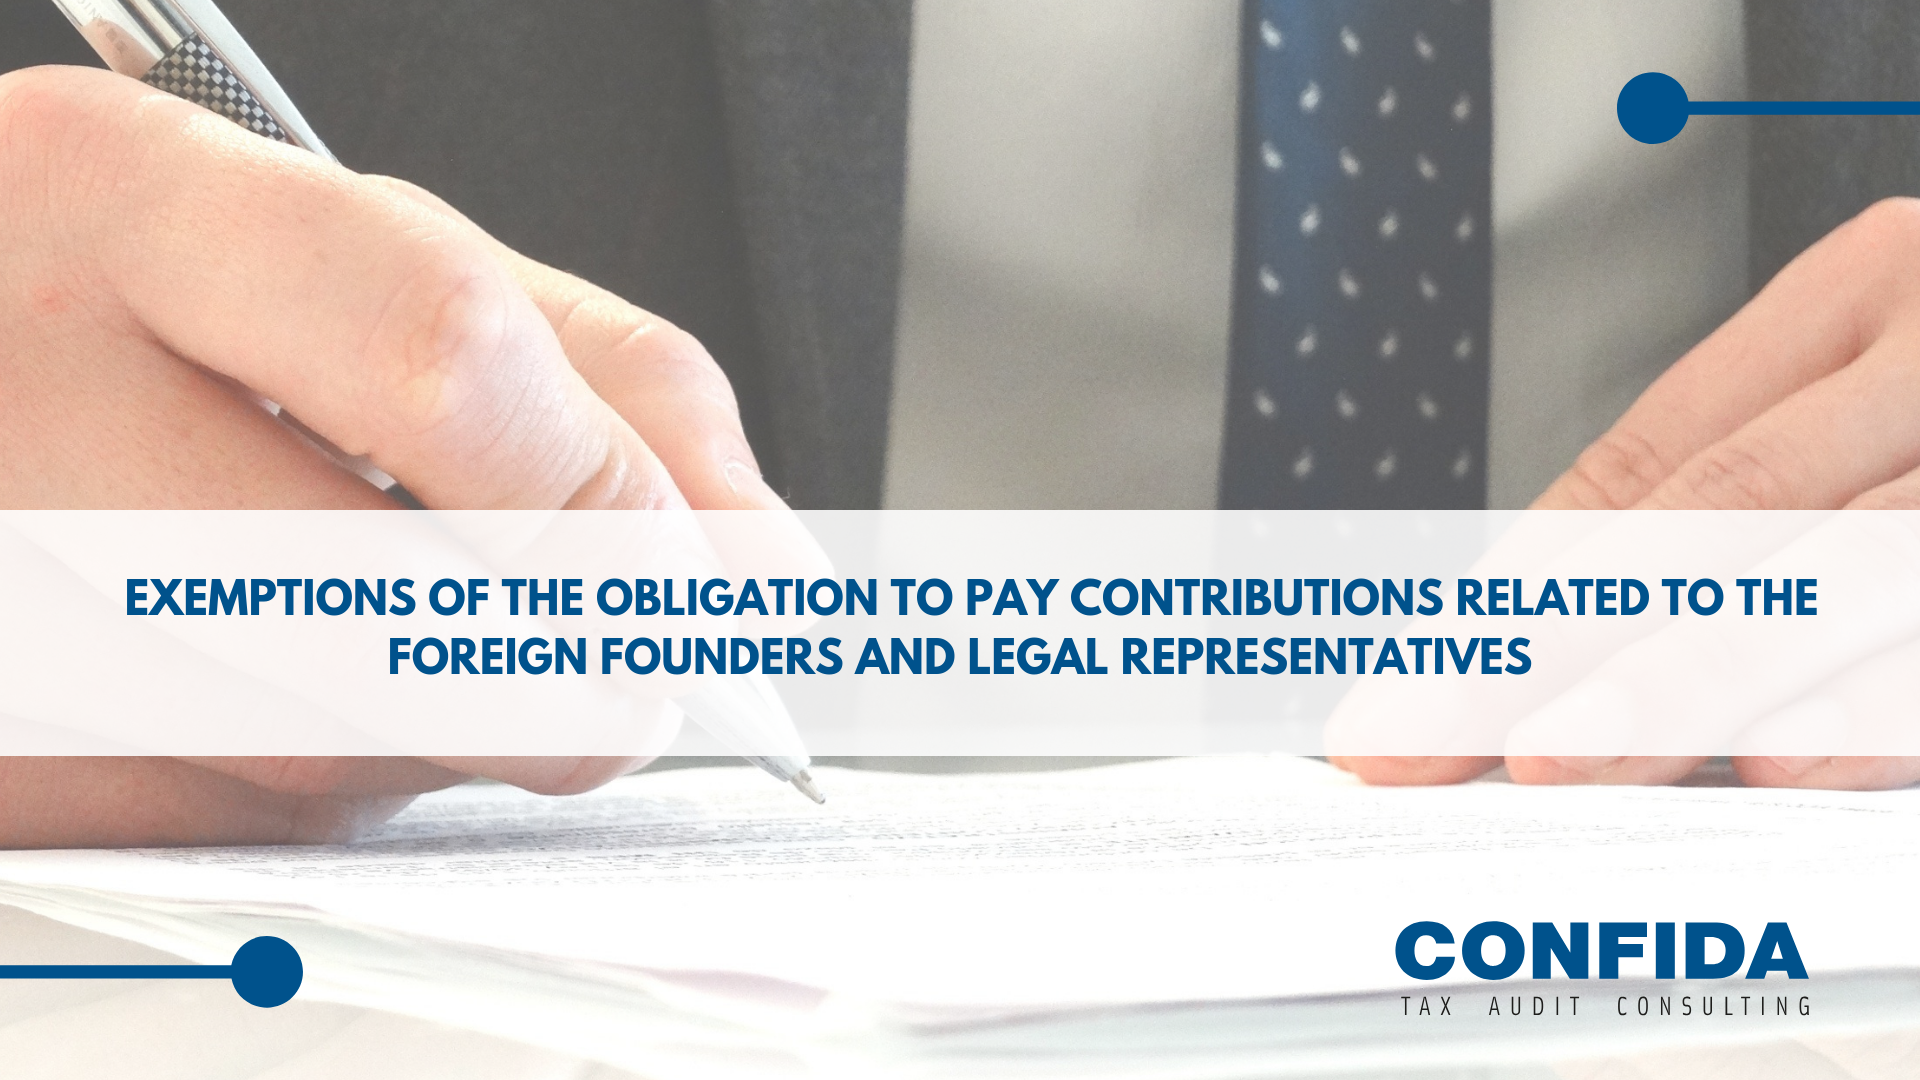 Exemptions of the obligation to pay contributions related to the foreign founders and legal representatives